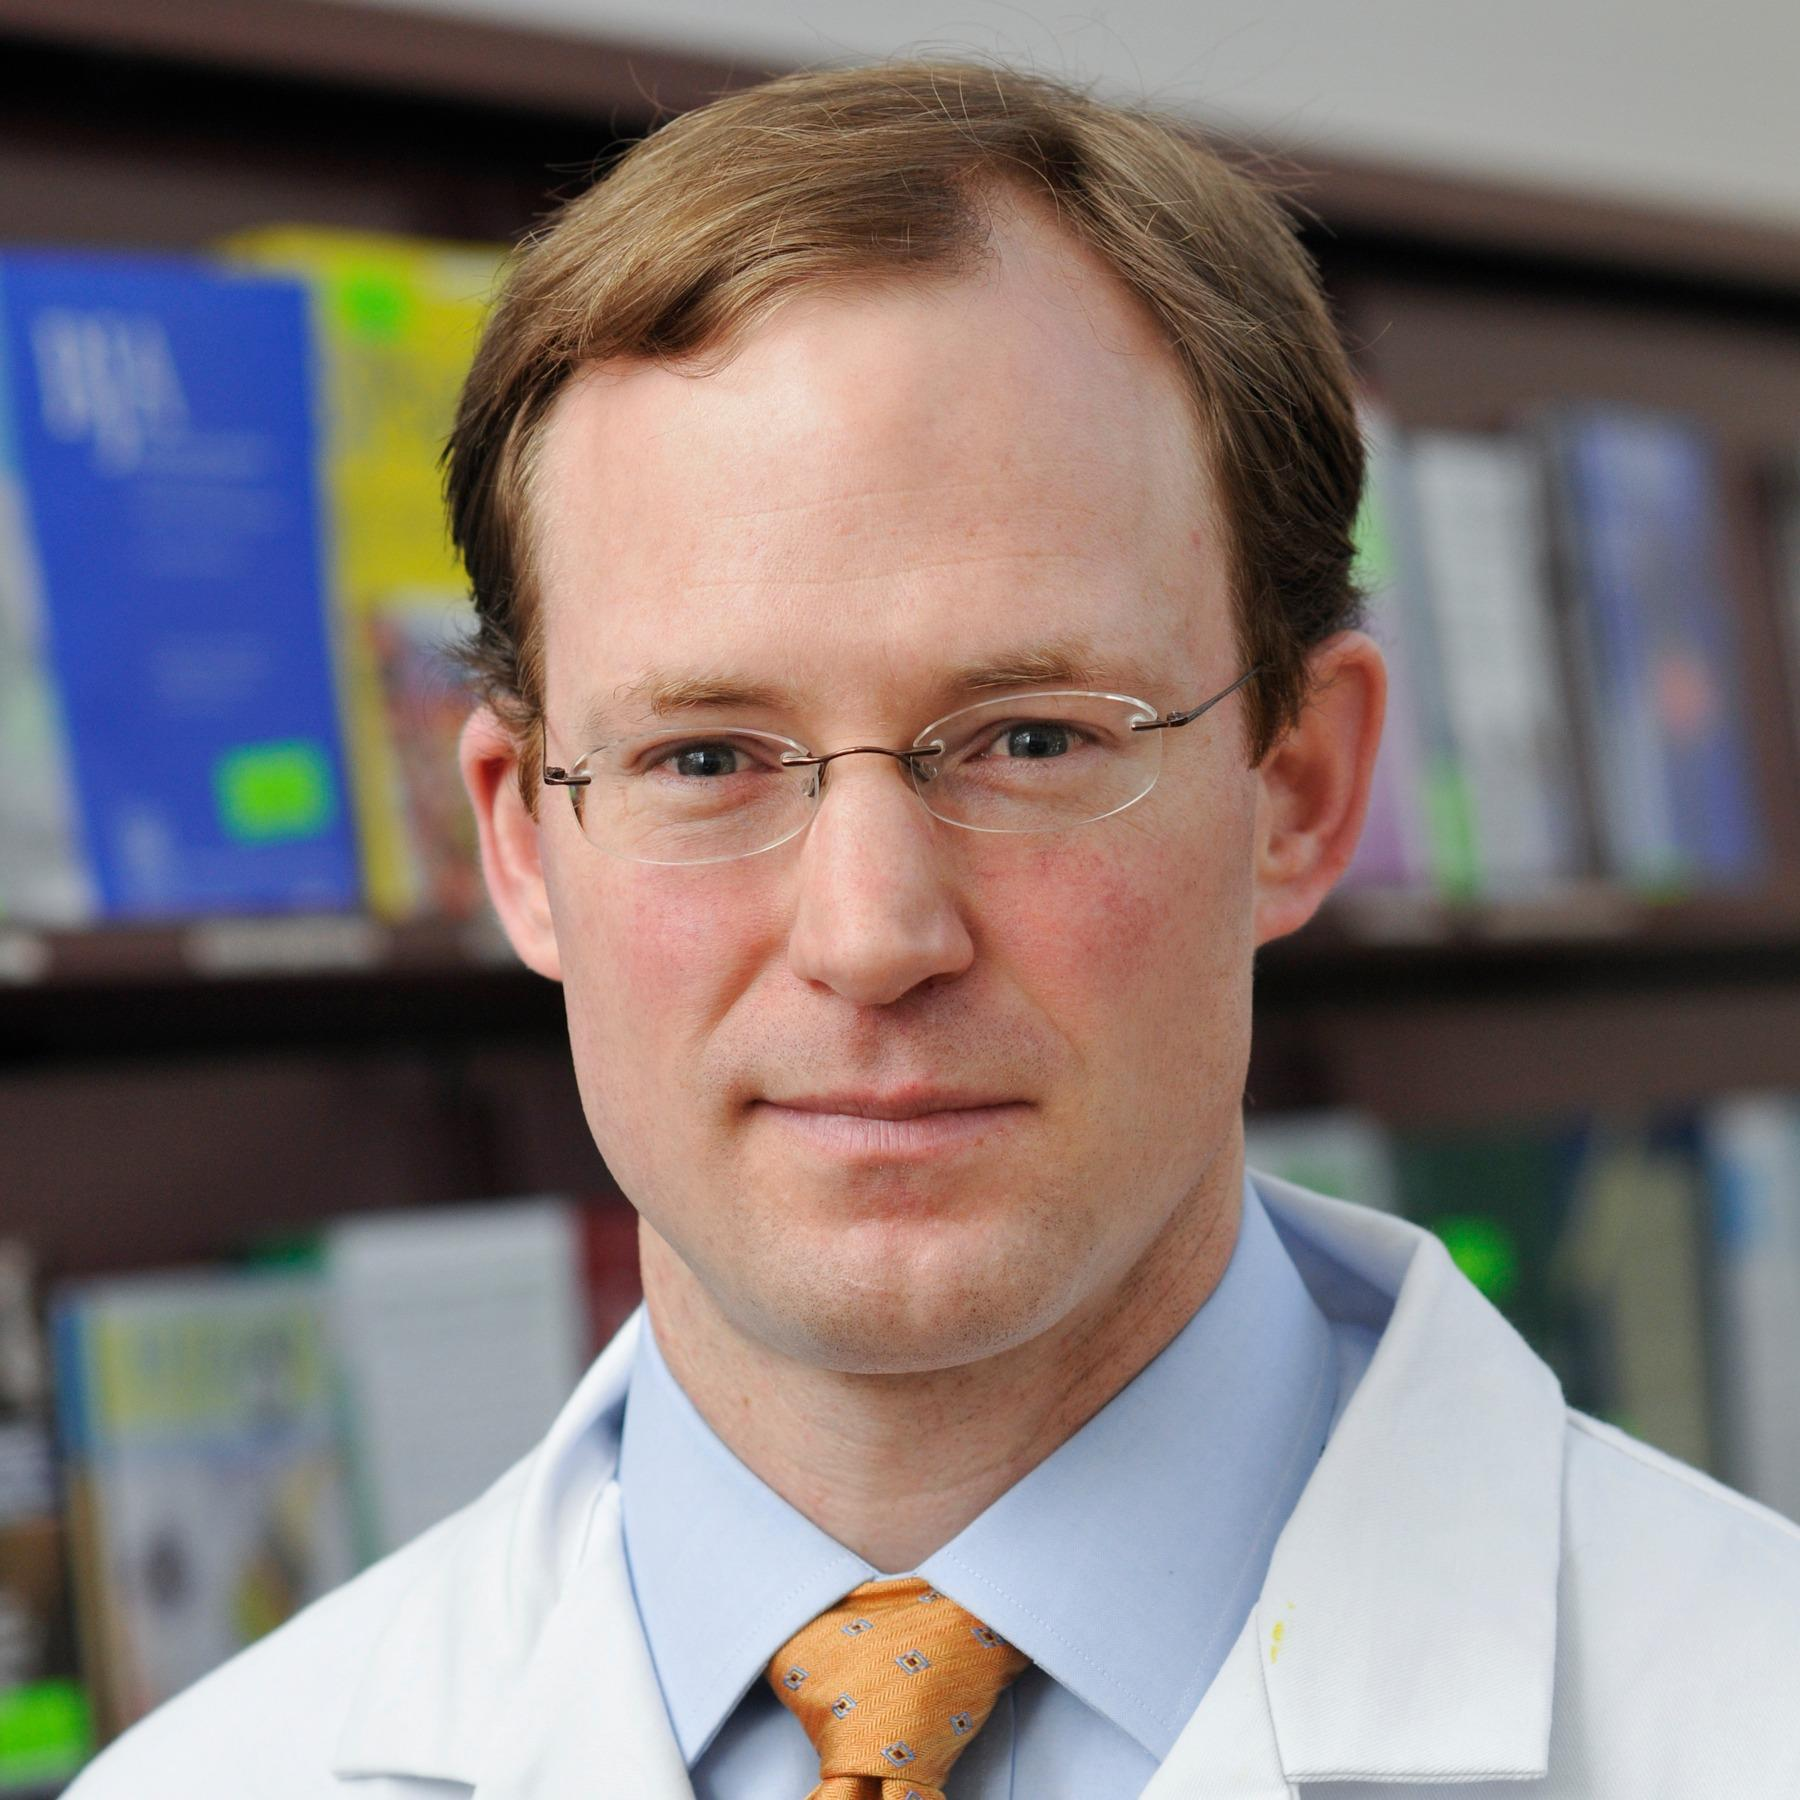 John Wylie, MD at 736 Cambrige Street Brighton, MA | Doctor, Book